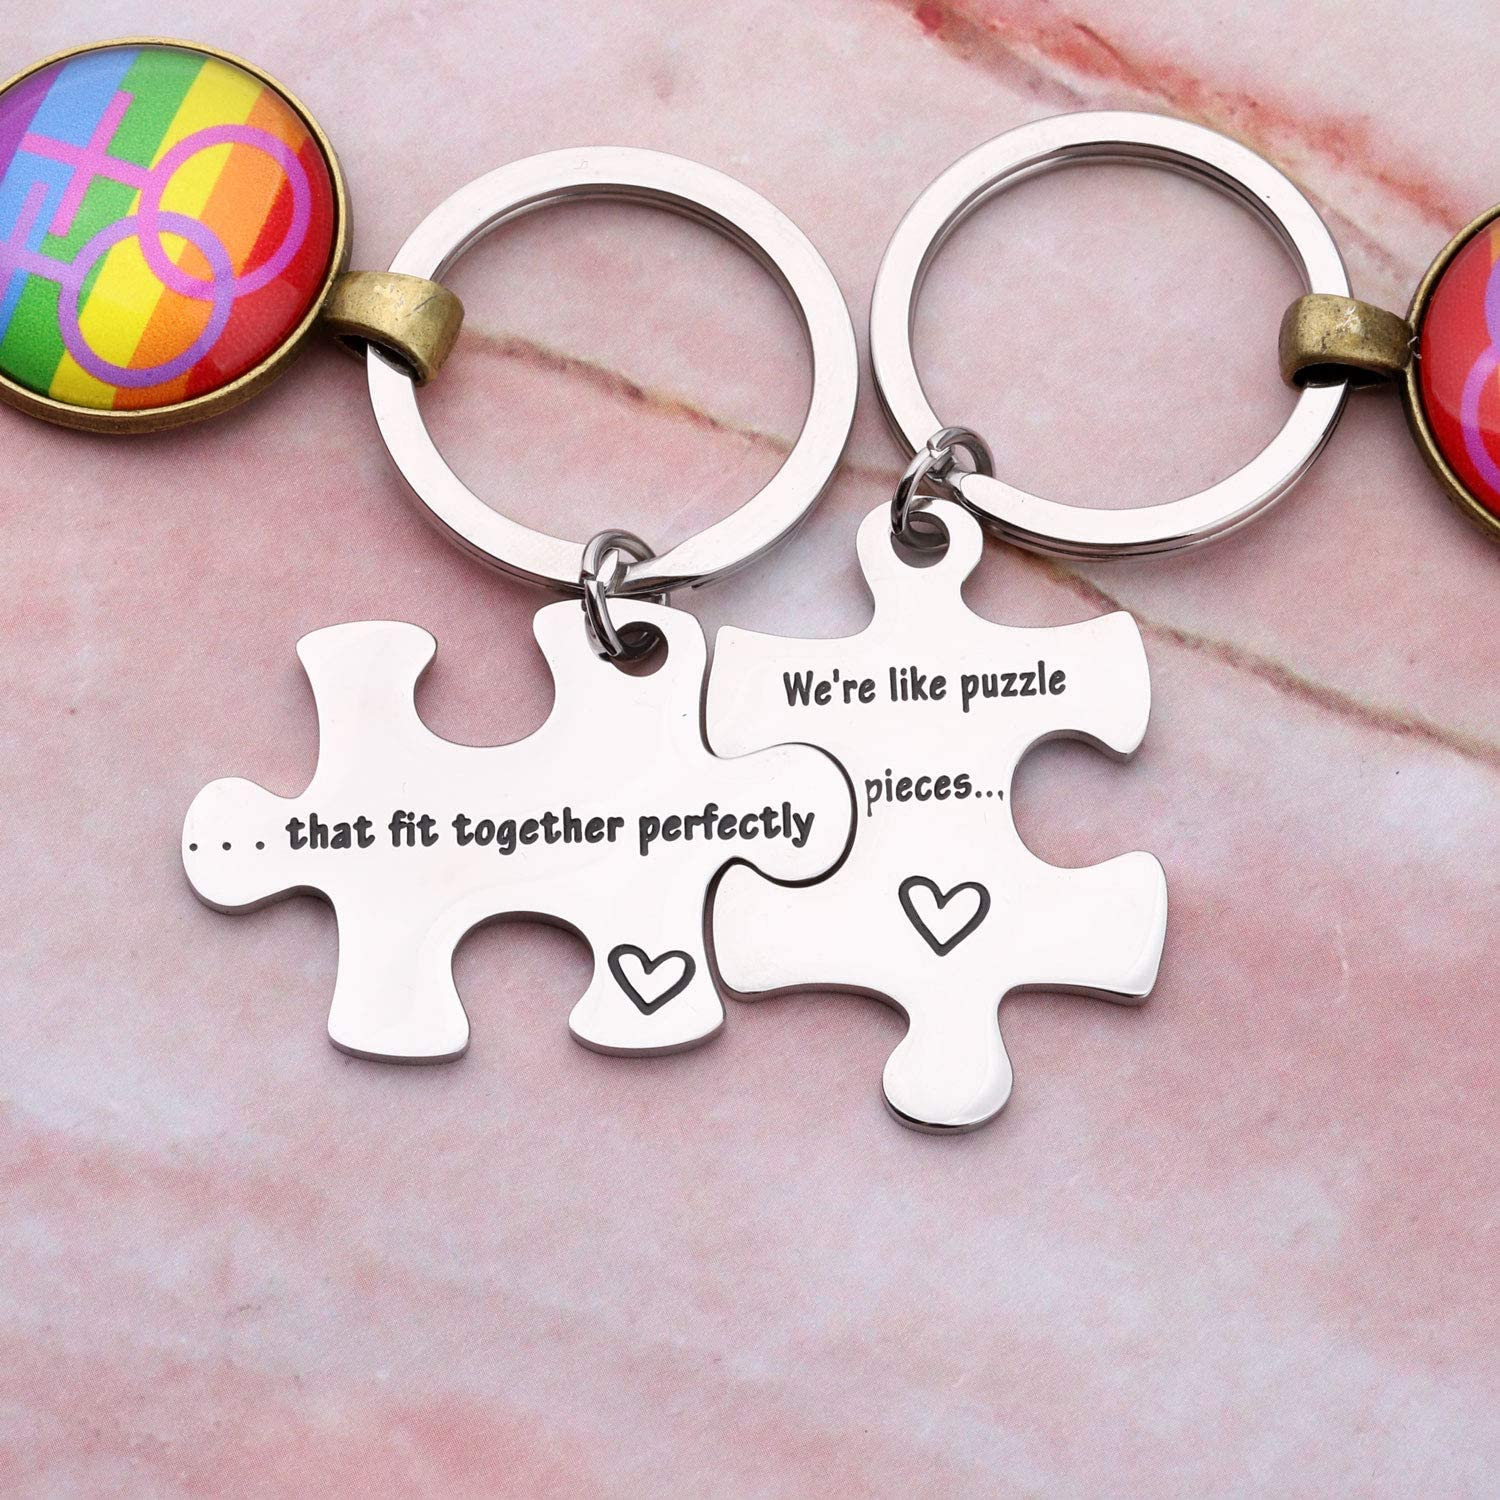 AKTAP LGBT Couples Puzzle Piece Keychains Were Like Puzzle Pieces That Fit Together Perfectly Rainbow Jewelry Lesbian Pride Gift for Her